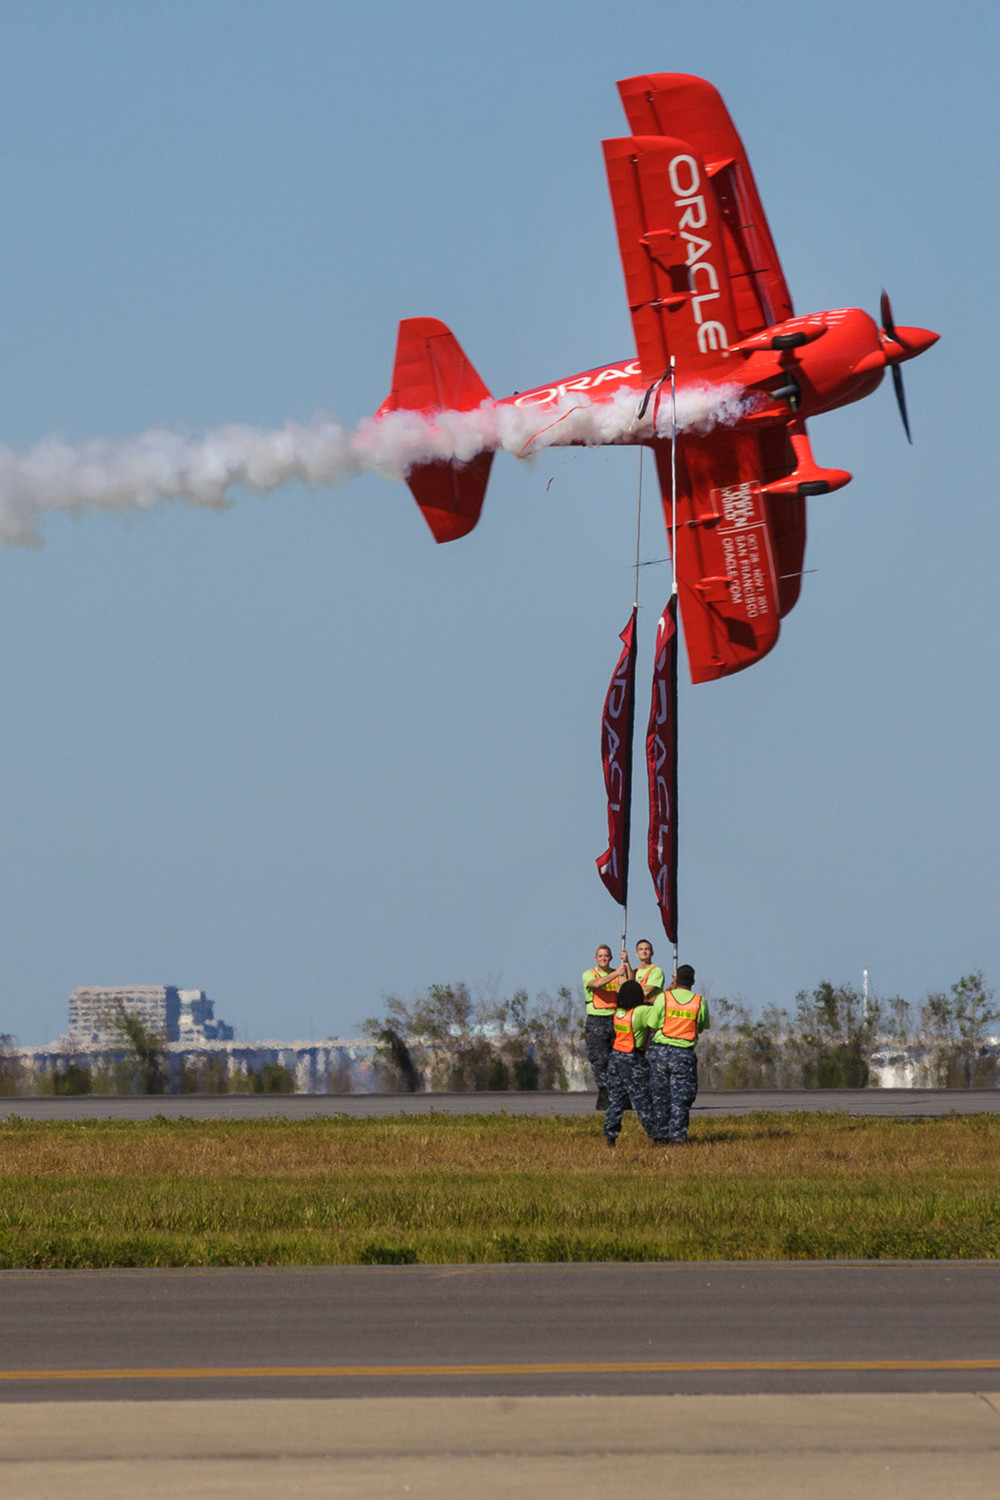 Air show stunt pilot Sean D. Tucker severs one of the three ribbons cut as part of his act's finale during a rehearsal for the Naval Air Station Jacksonville Air Show last week.